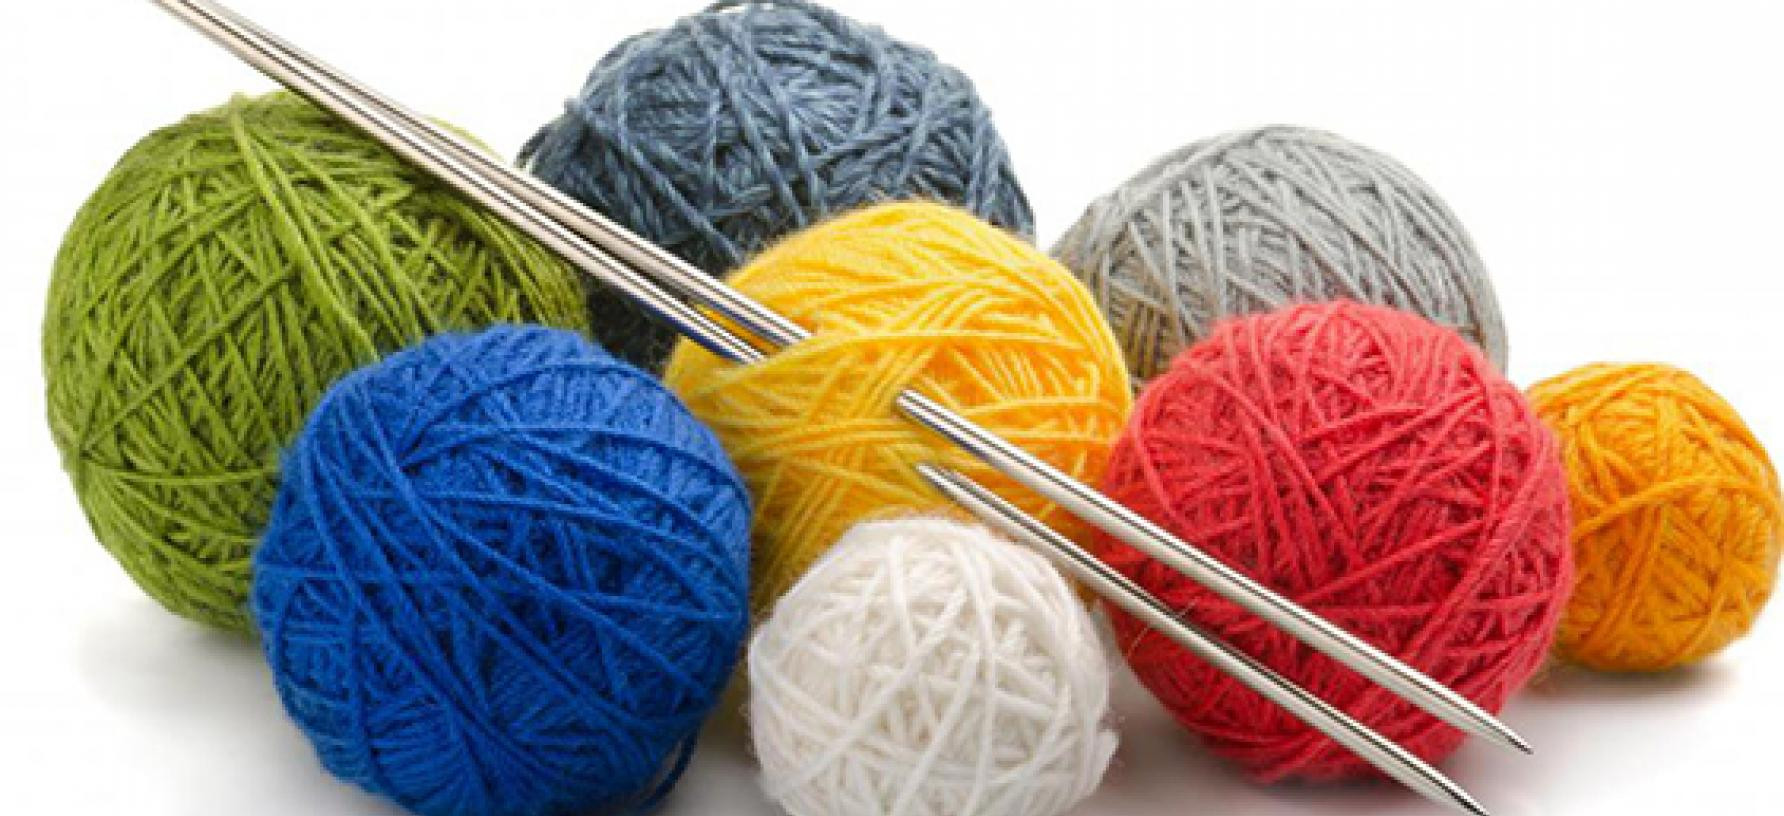 Learn to Knit 4 week series • Insight Shop VA